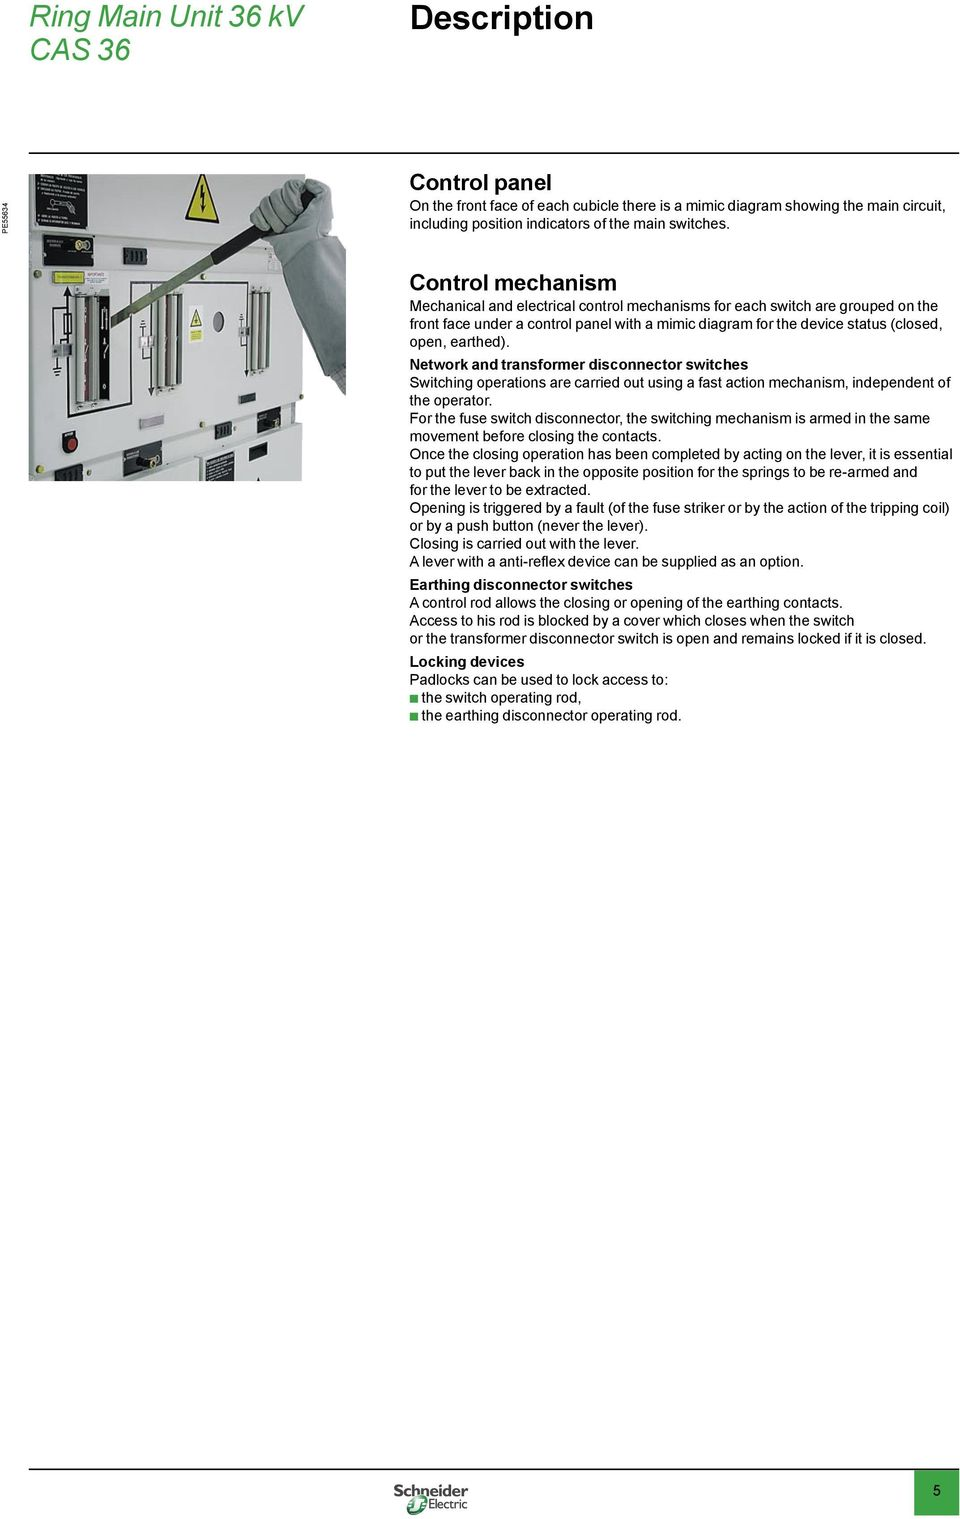 Cas 36 ring main unit pdf network and transformer disconnector switches switching operations are carried out using a fast action mechanism ccuart Images